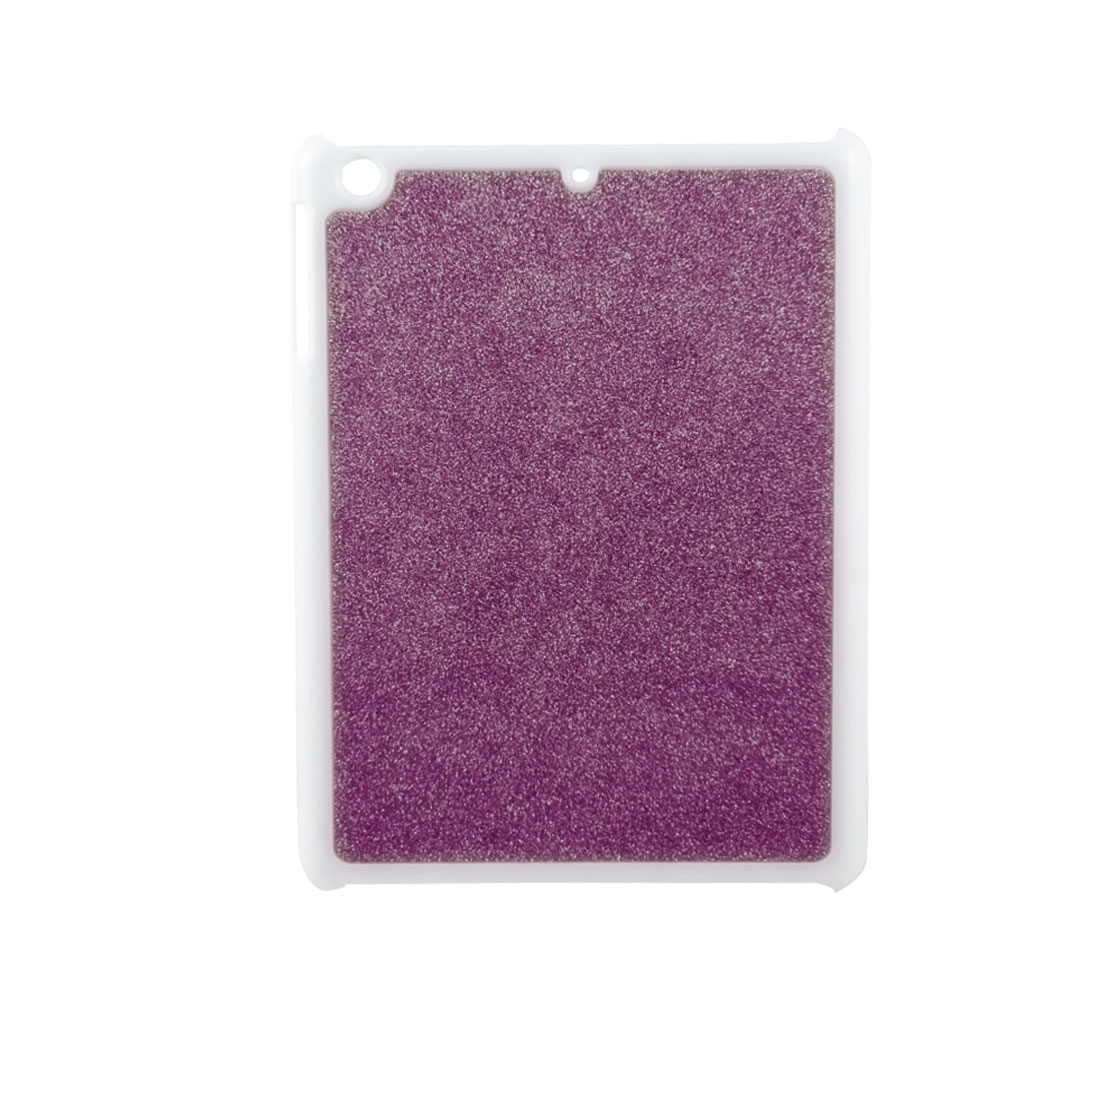 Glitter Bling Coated Fuchsia Hard Back Case Cover for iPad Mini